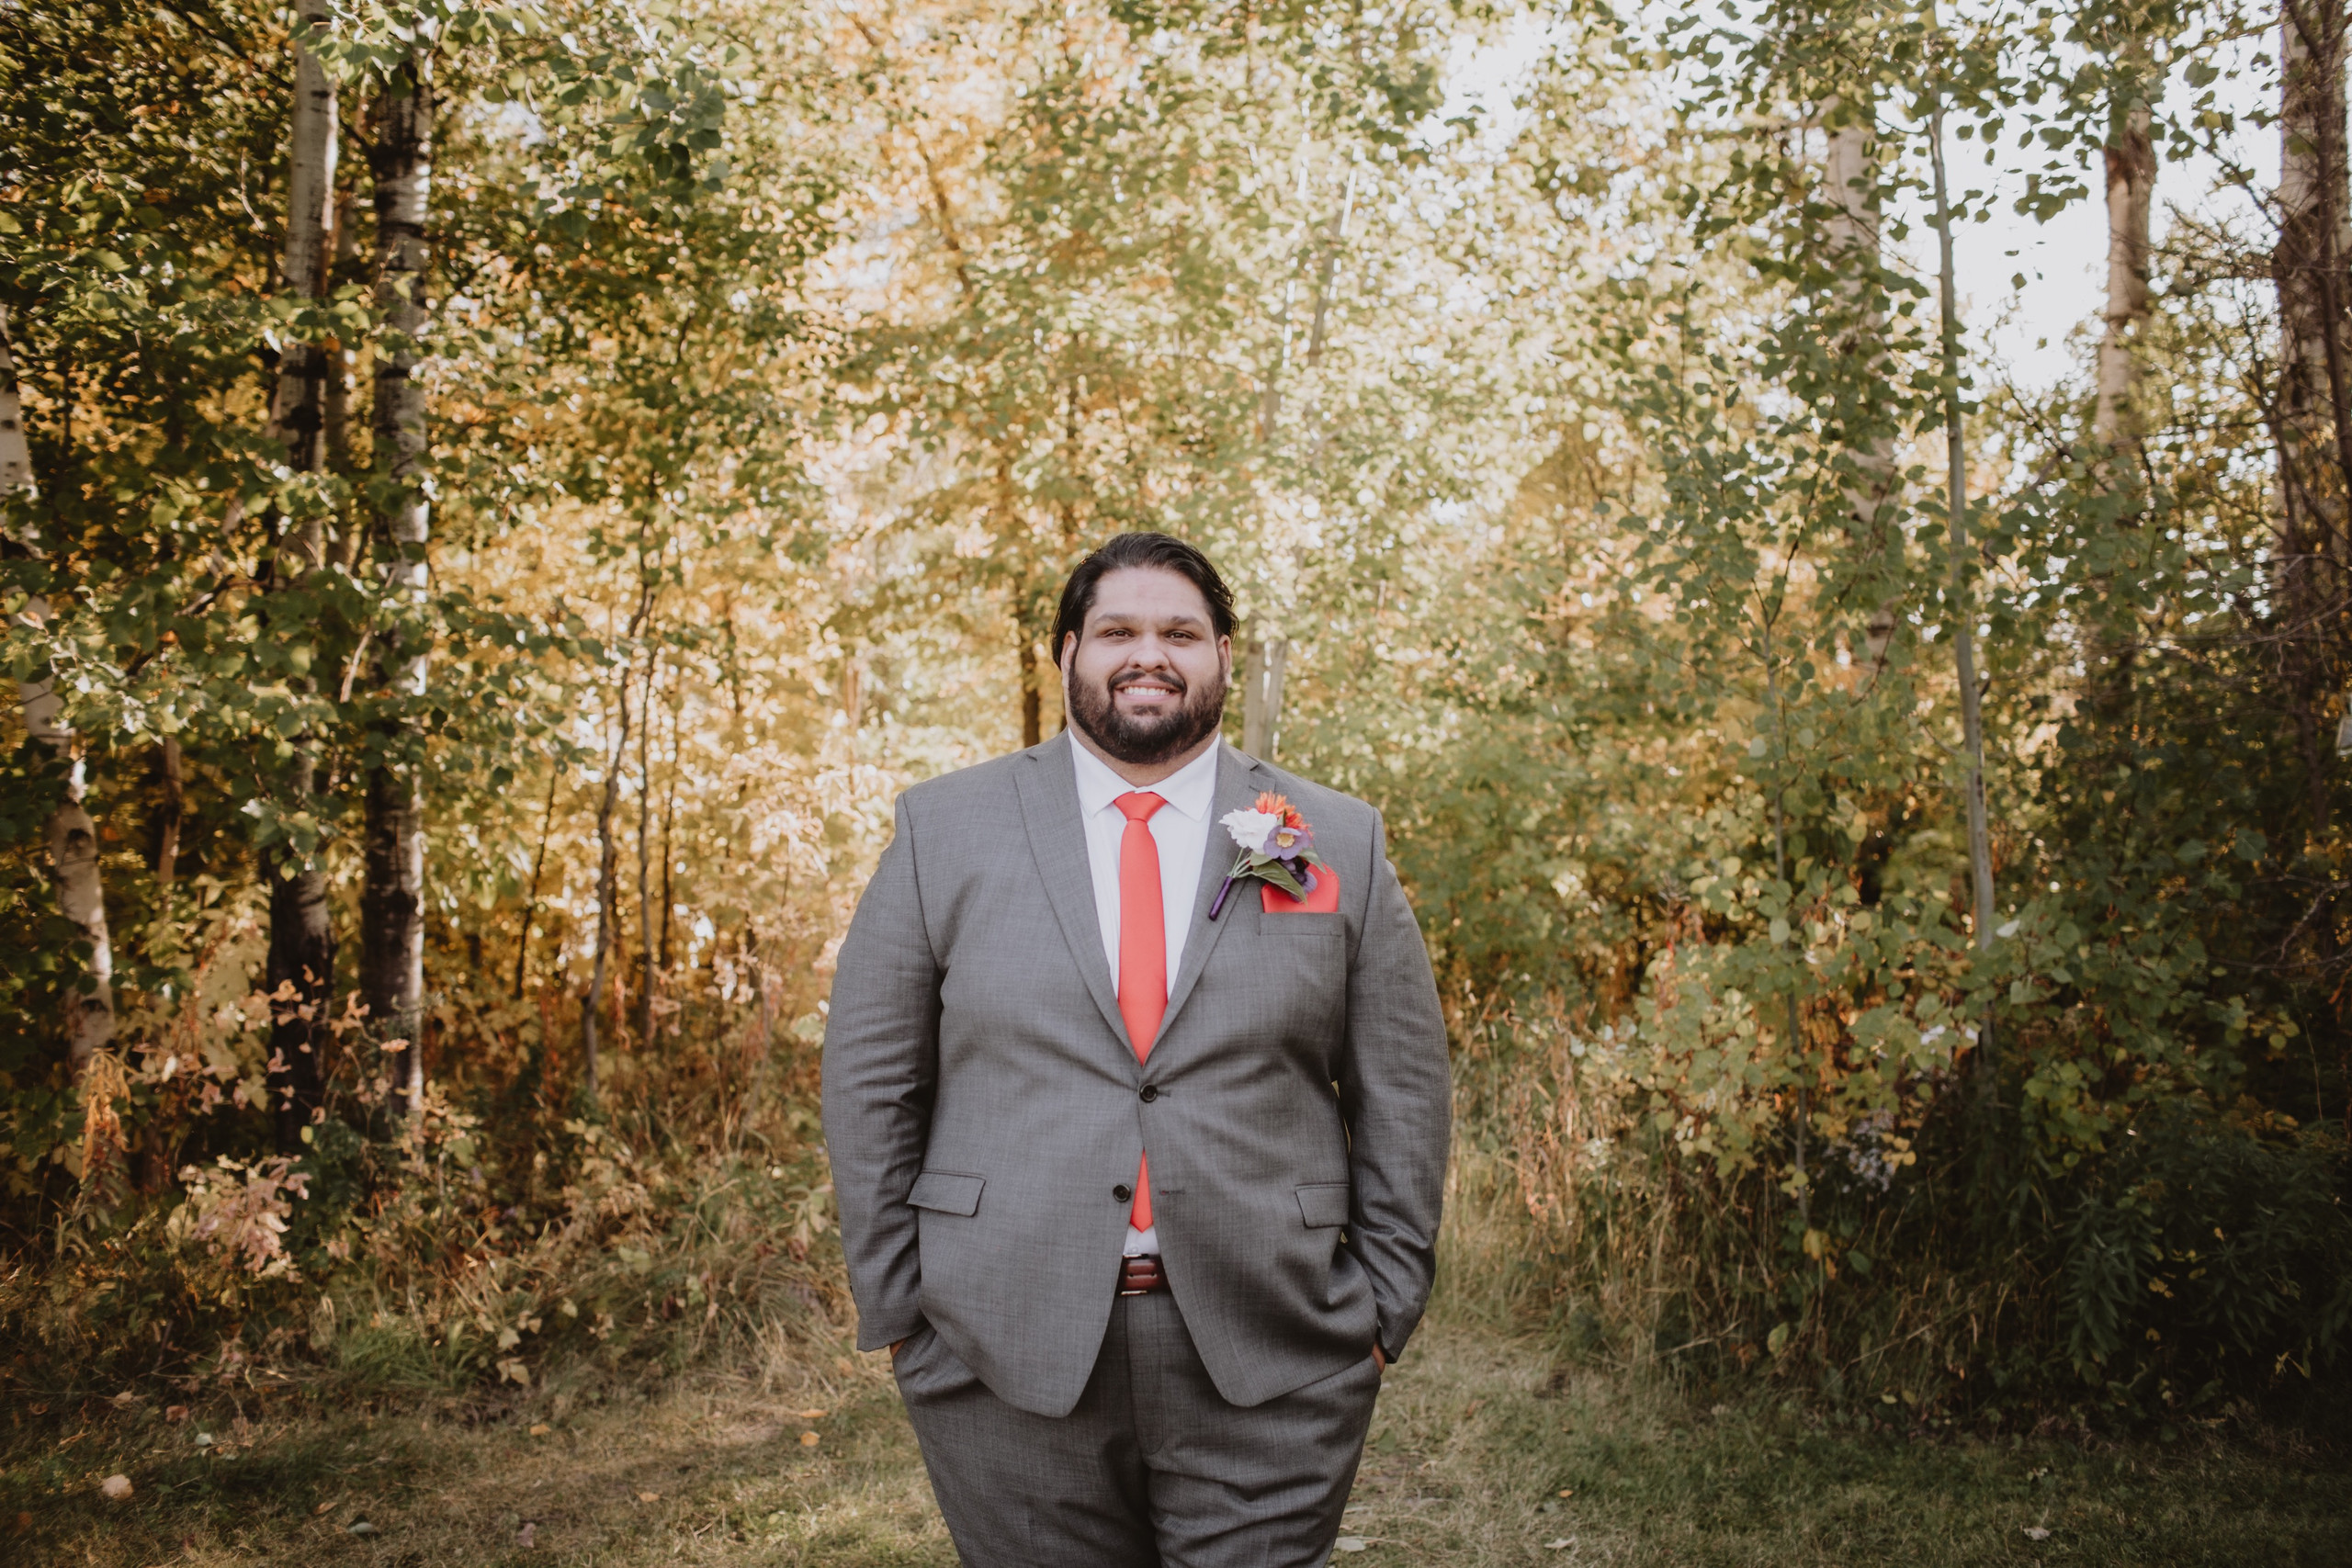 Groom Poses for Portrait during fall wedding day in Manitoba.